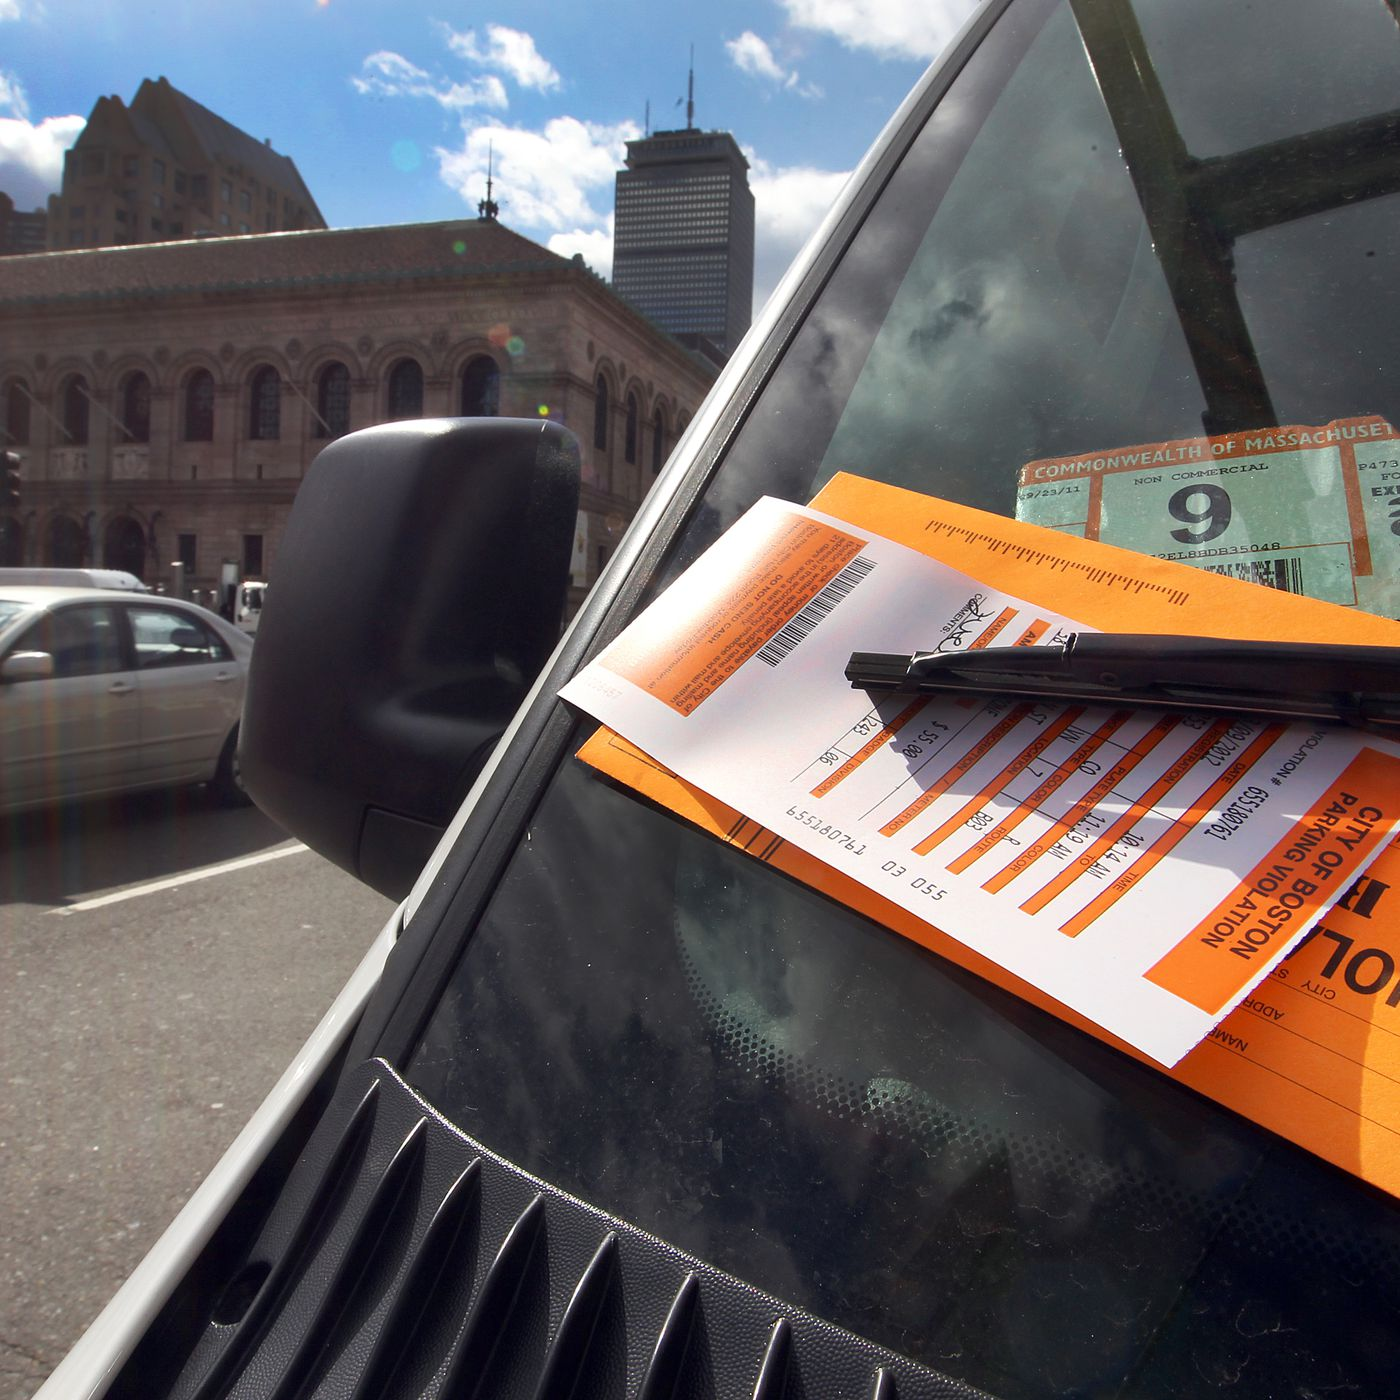 Lawyer bots that fight parking tickets could cost local cities money